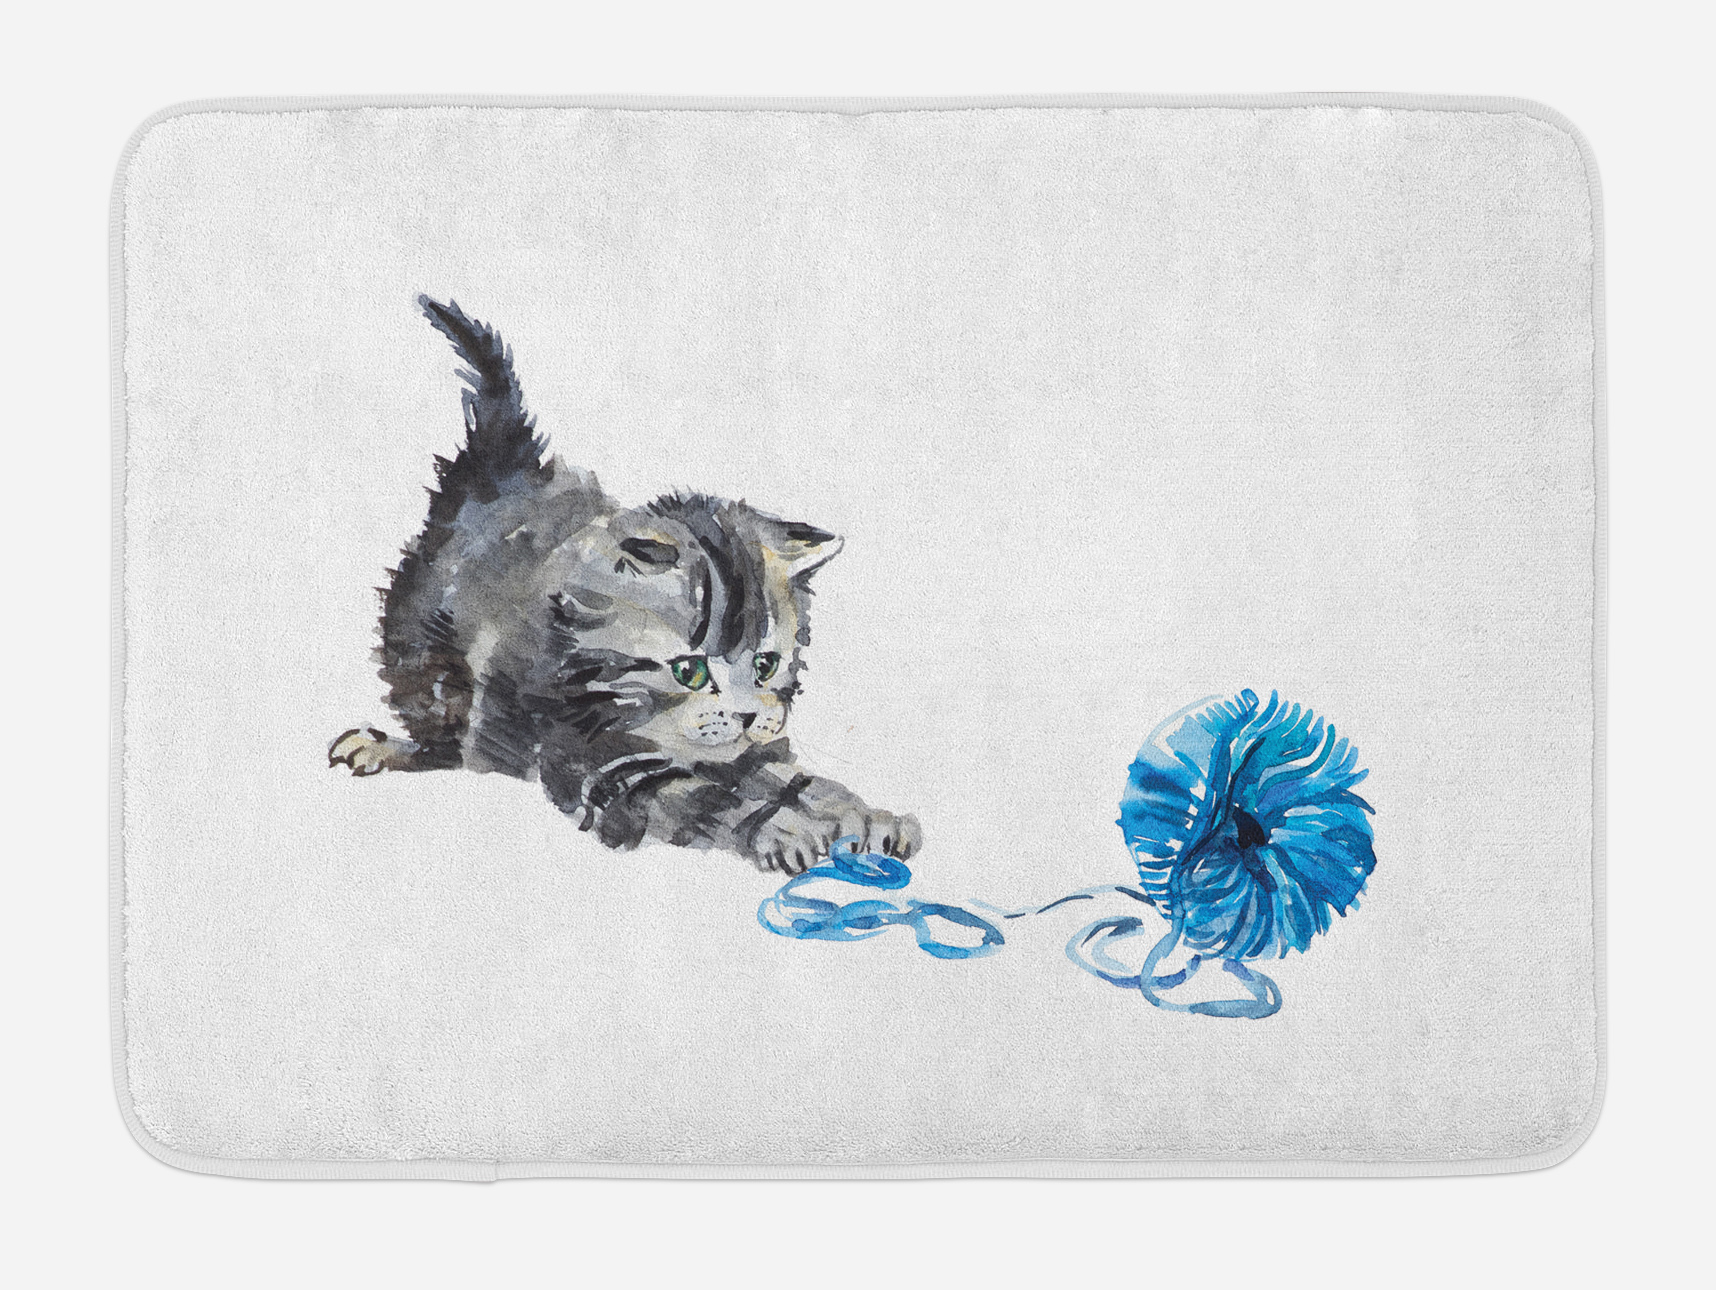 Cat Bath Mat, Playful Baby Kitten with Ball of Yarn Furry Animal Domestic Feline Kids Pets... by 3decor llc